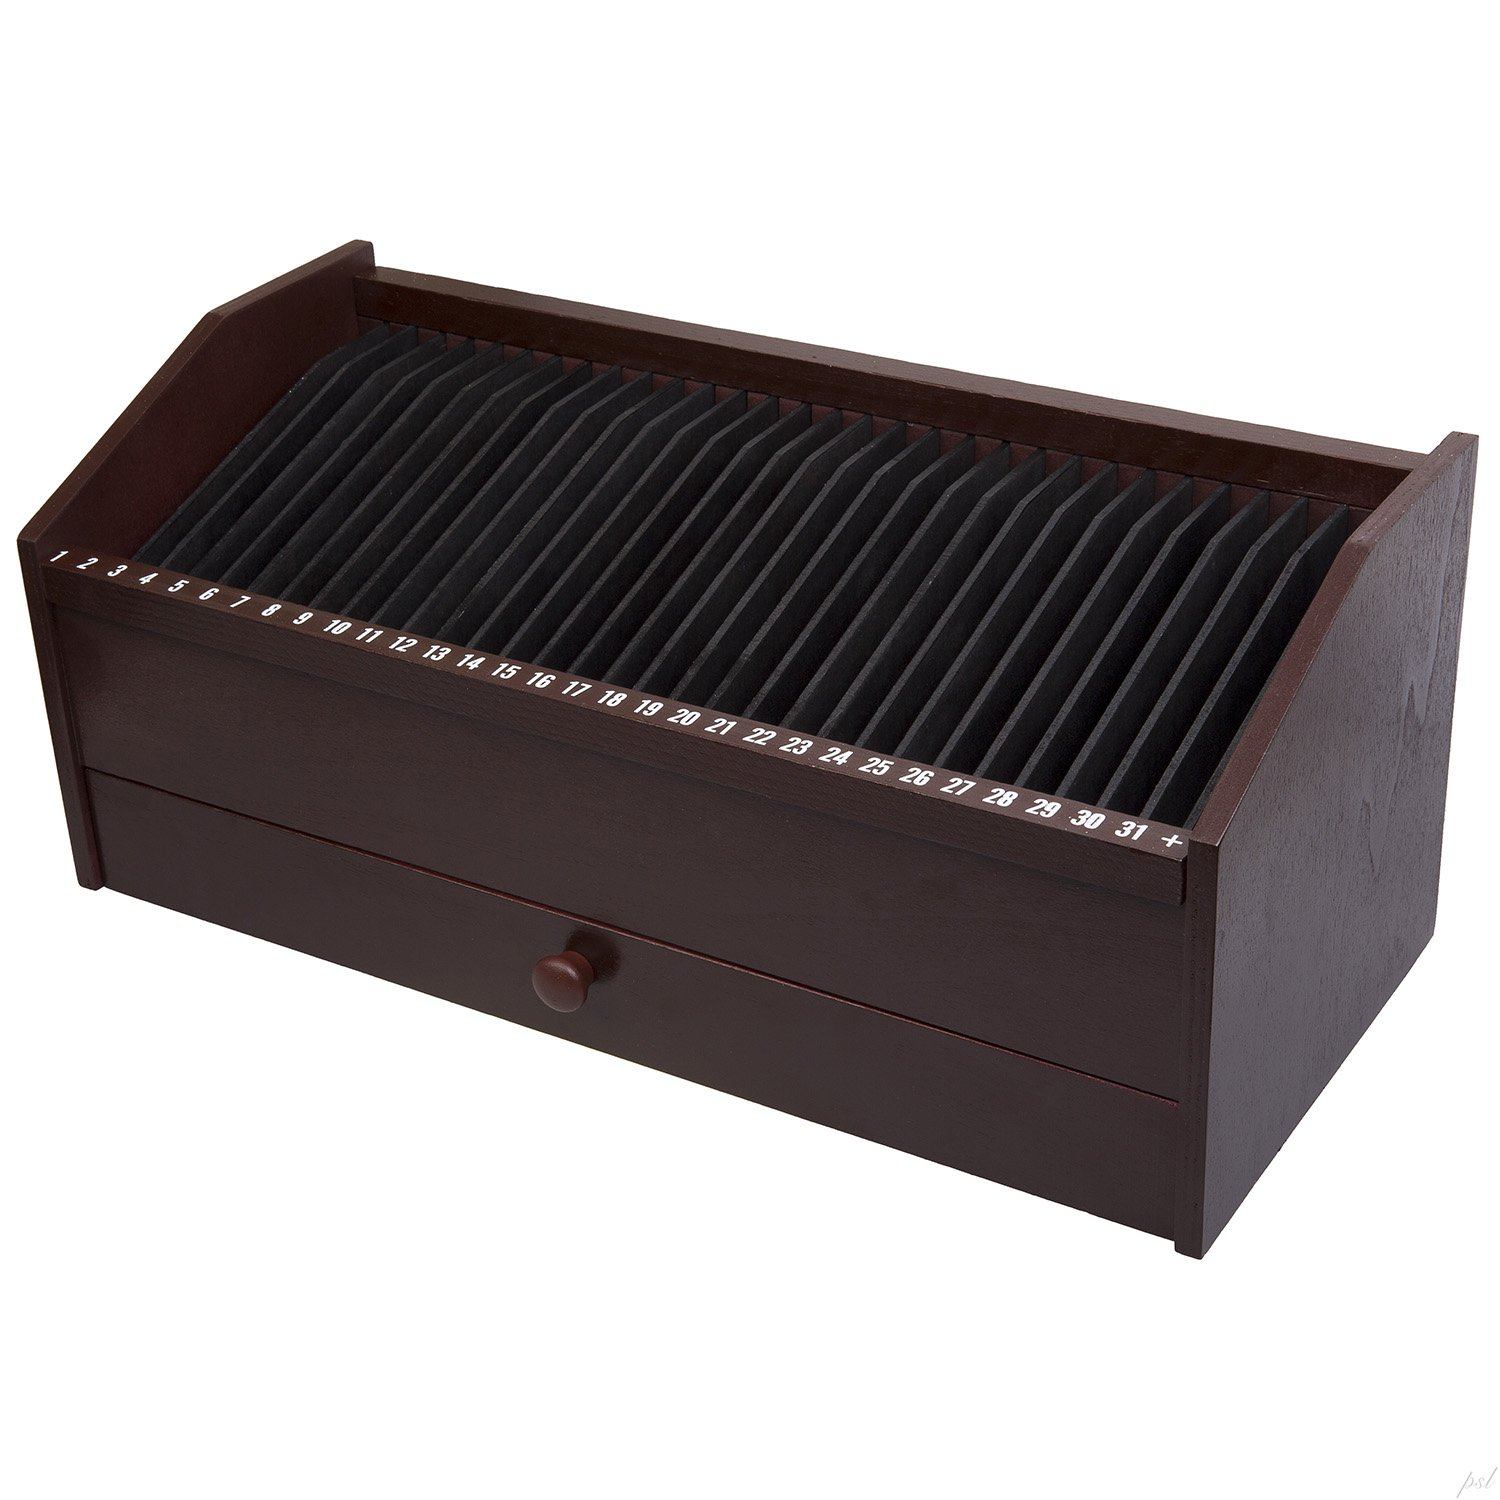 Amazon.com : 31 SLOT WOODEN BILL/LETTER ORGANIZER WITH DRAWER : Office Desk Organizers : Office Products